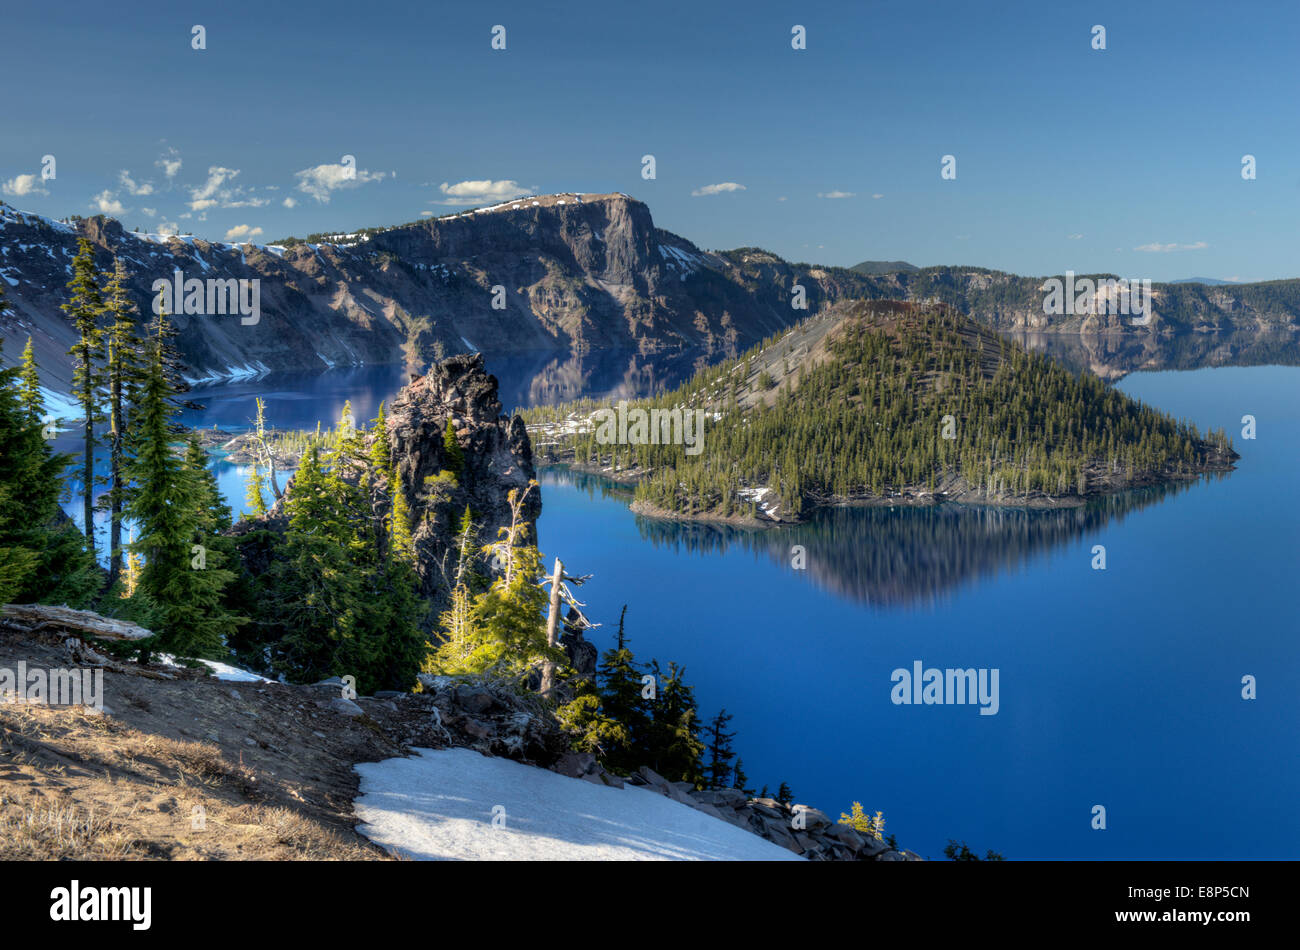 Oregon's Crater Lake with Wizard Island, as seen from Discovery Point. - Stock Image